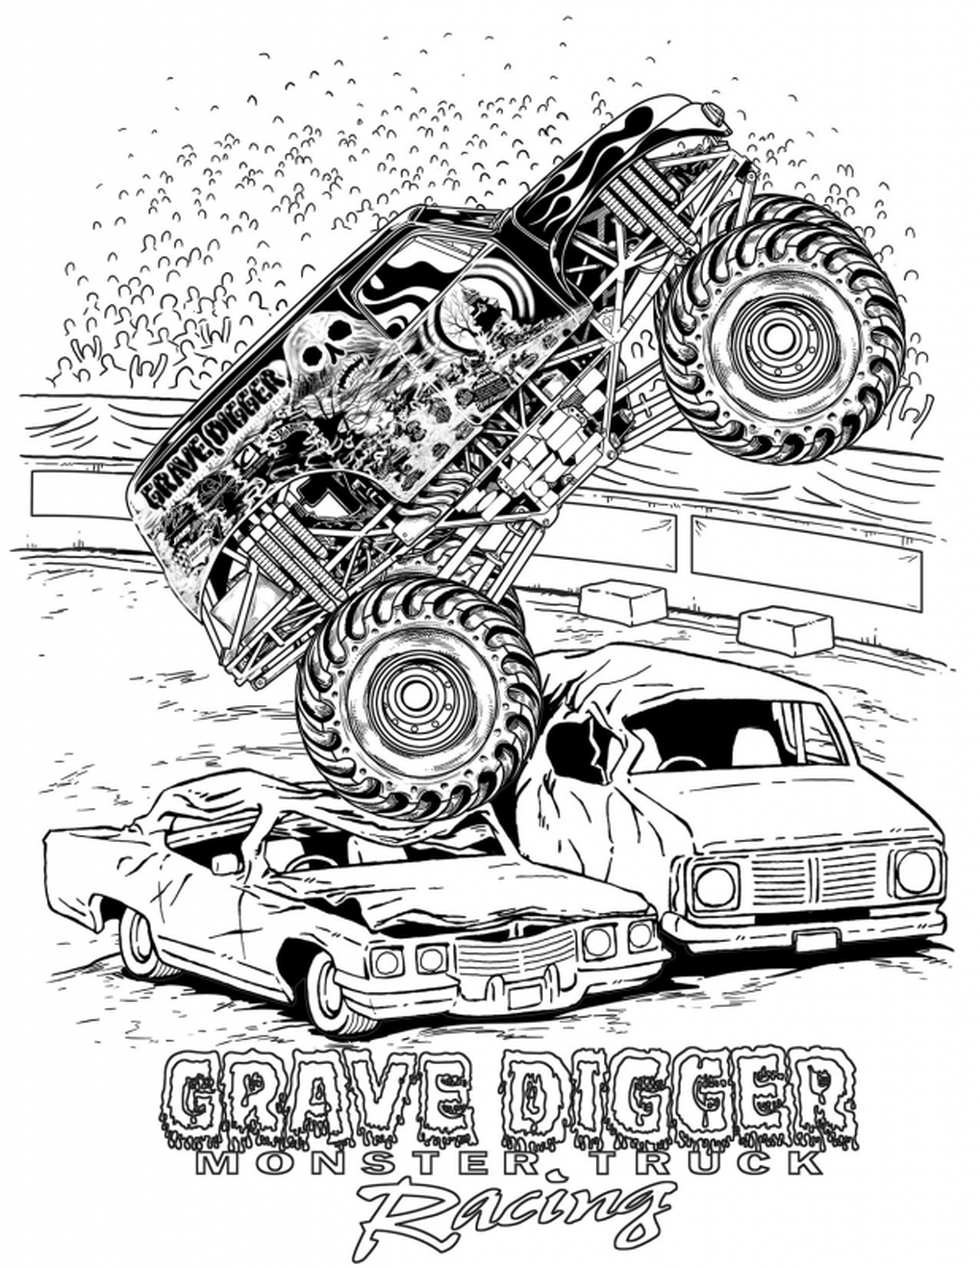 Get this grave digger monster truck coloring pages for Grave digger monster truck coloring pages